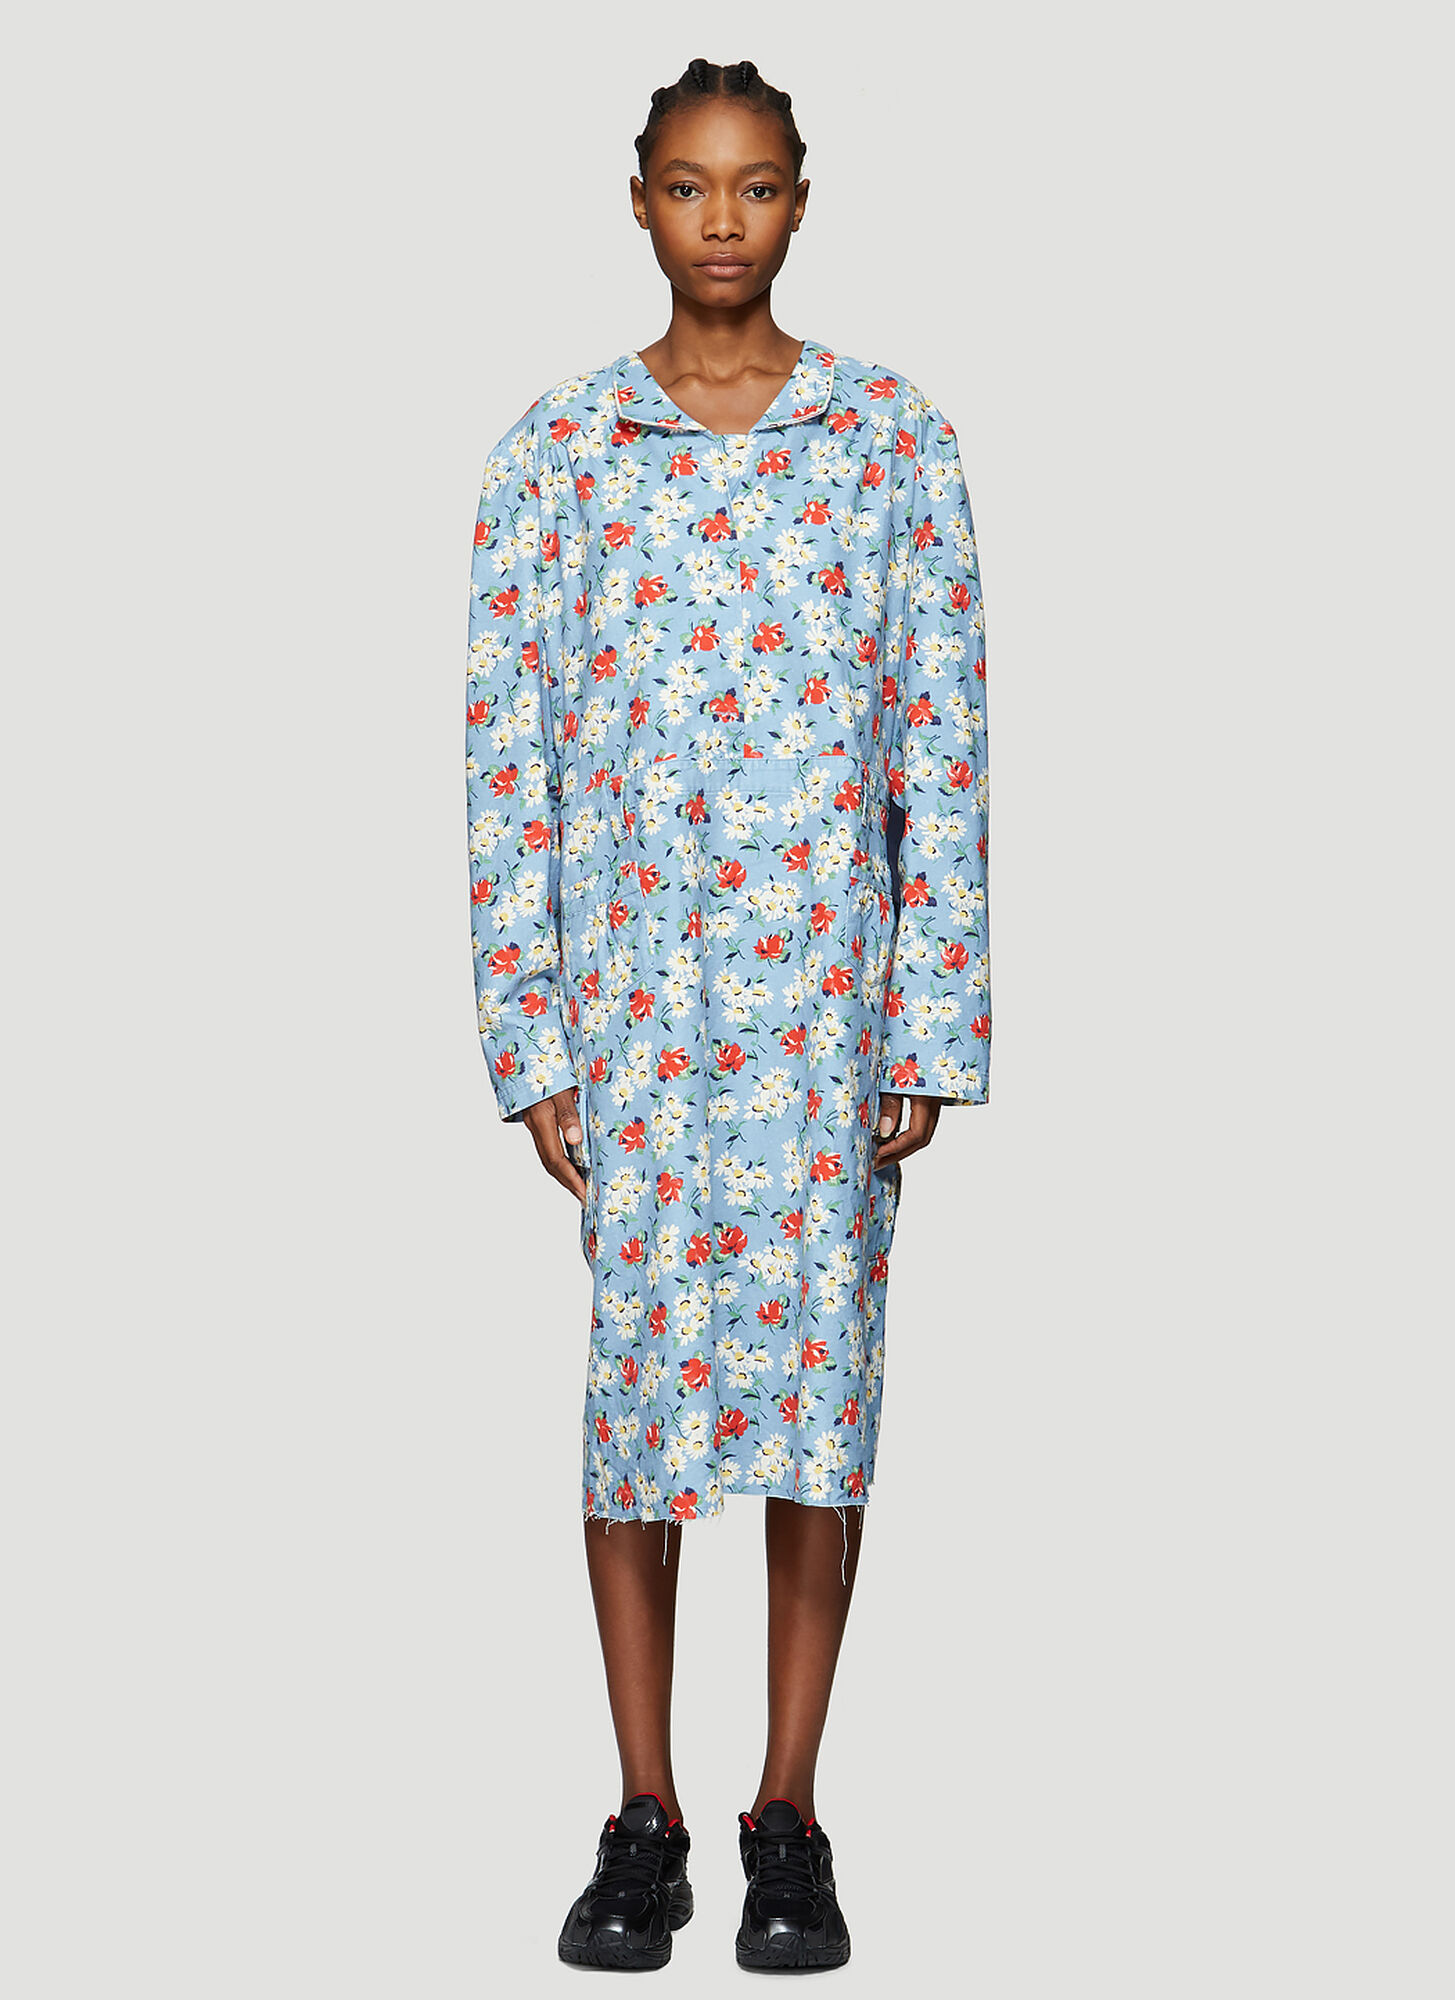 Vetements Floral Print Cargo Dress in Blue